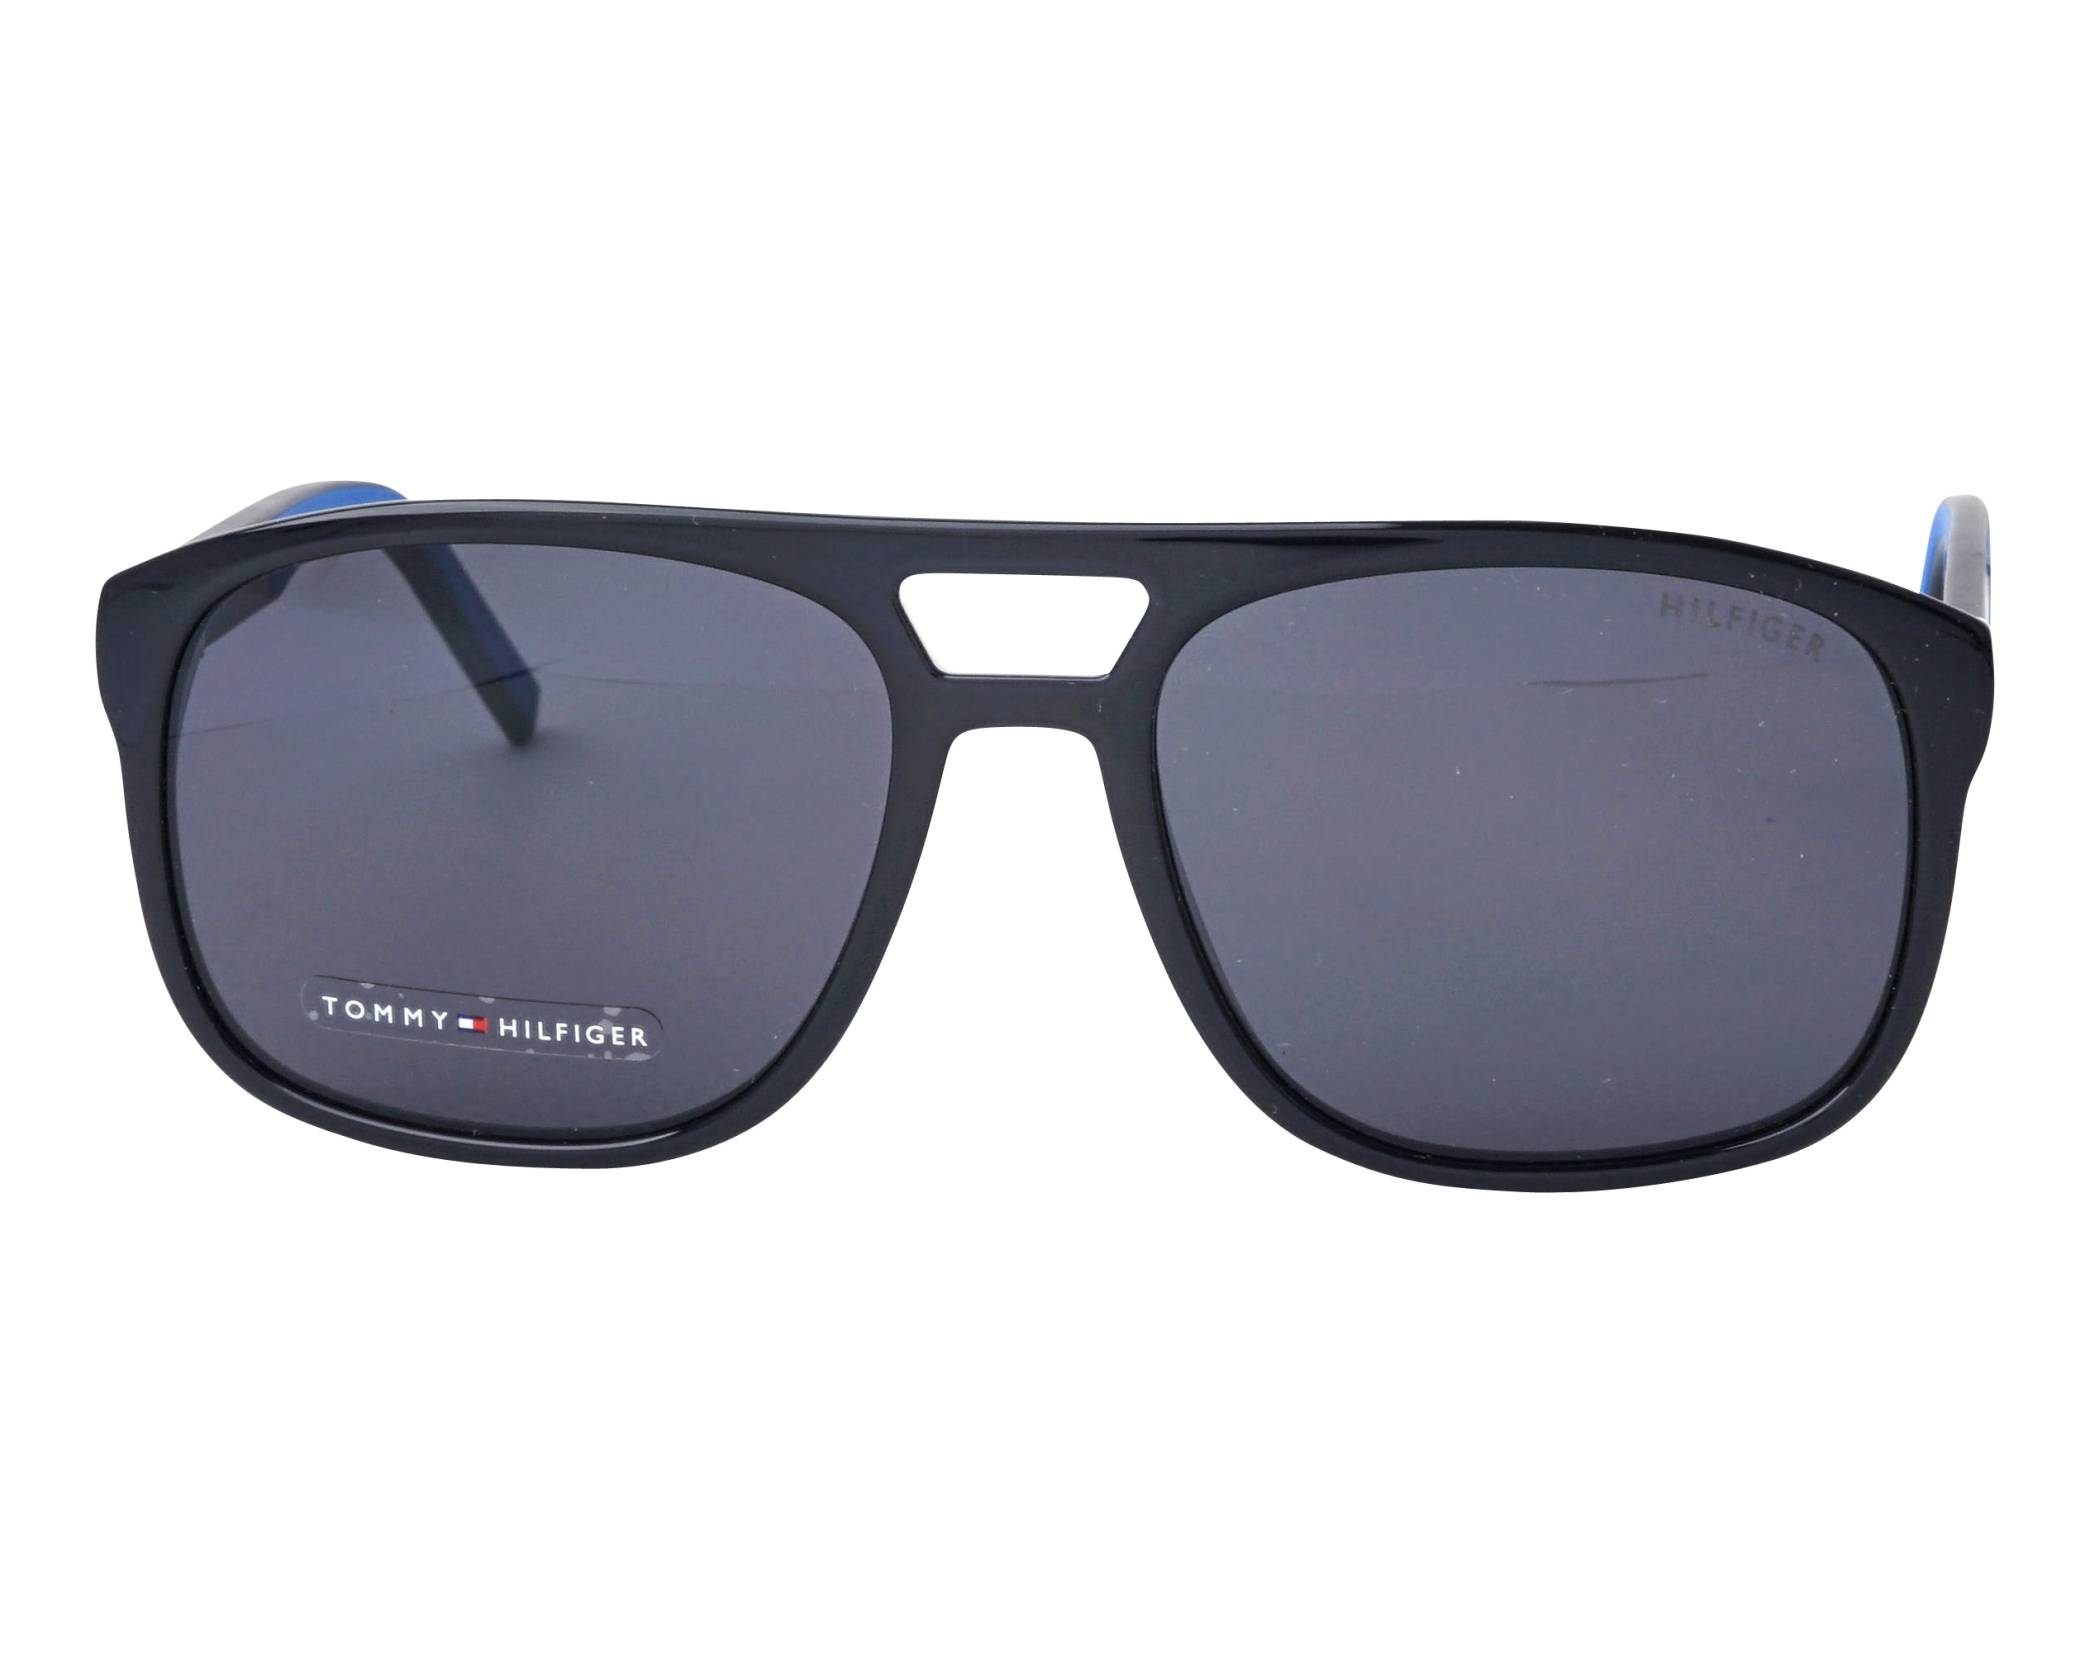 Tommy Hilfiger TH 1603 S D51IR